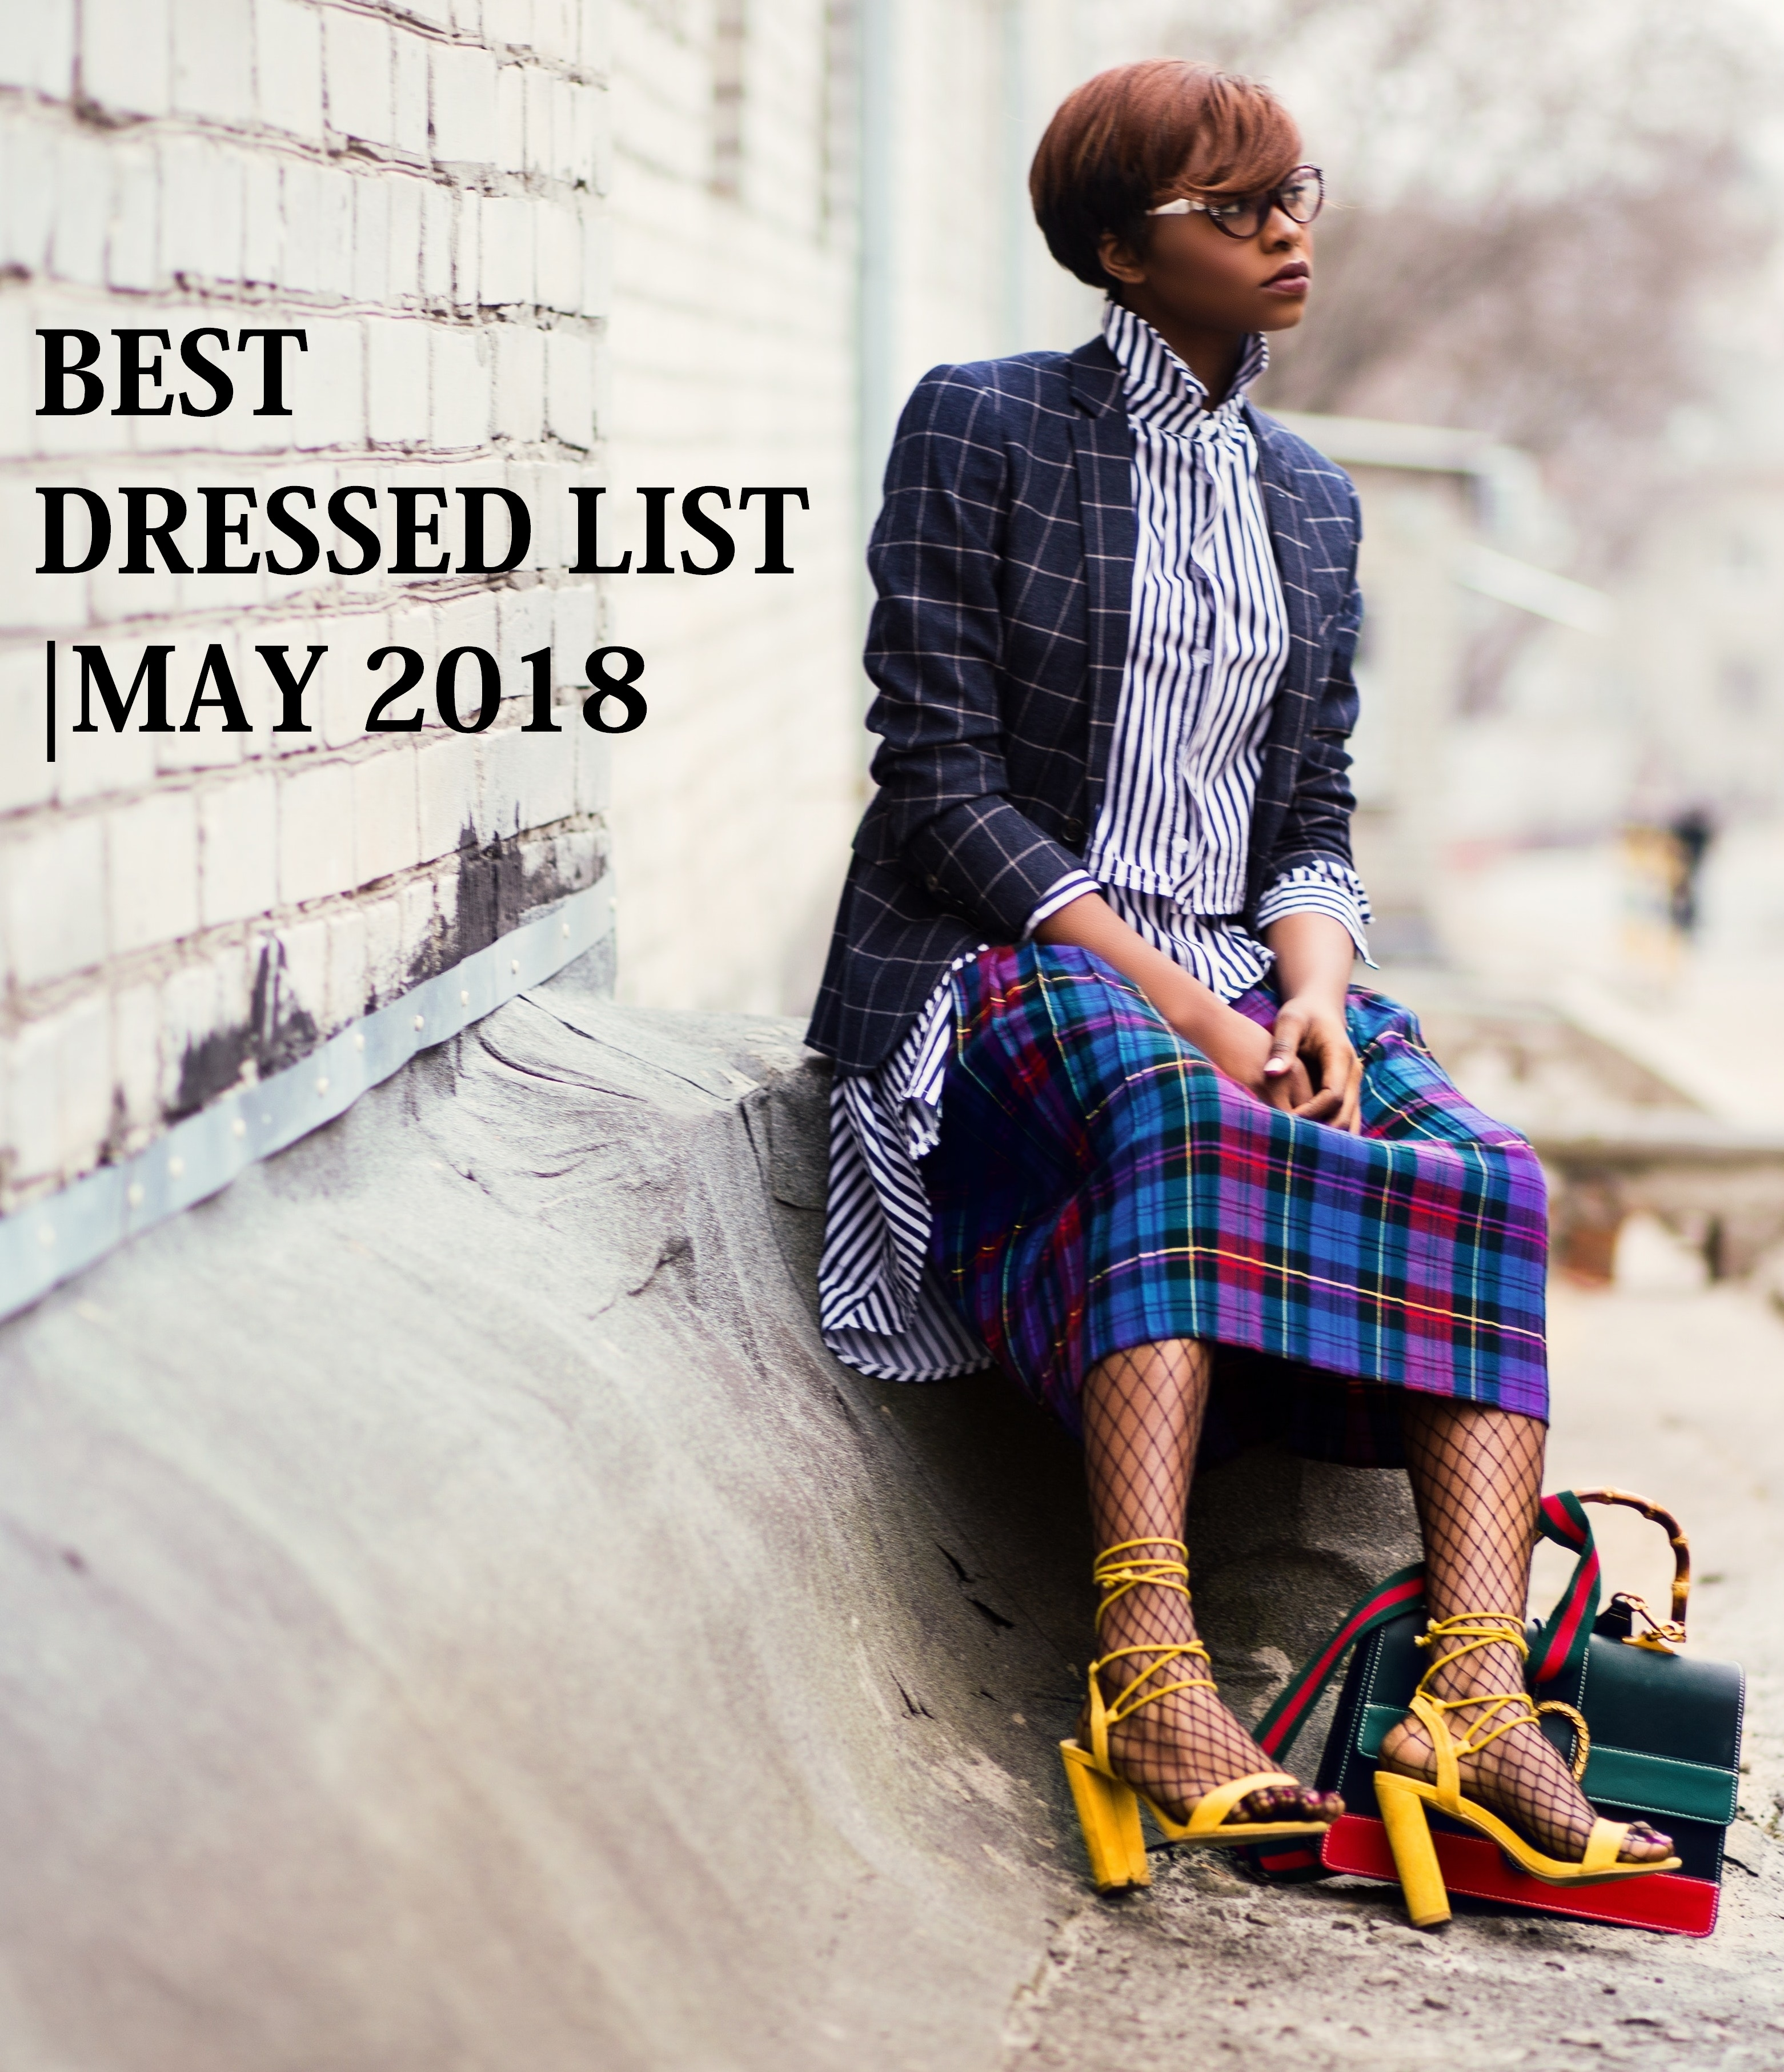 Lysa Best Dressed Women List | May 2018 Lysa Africa Magazine